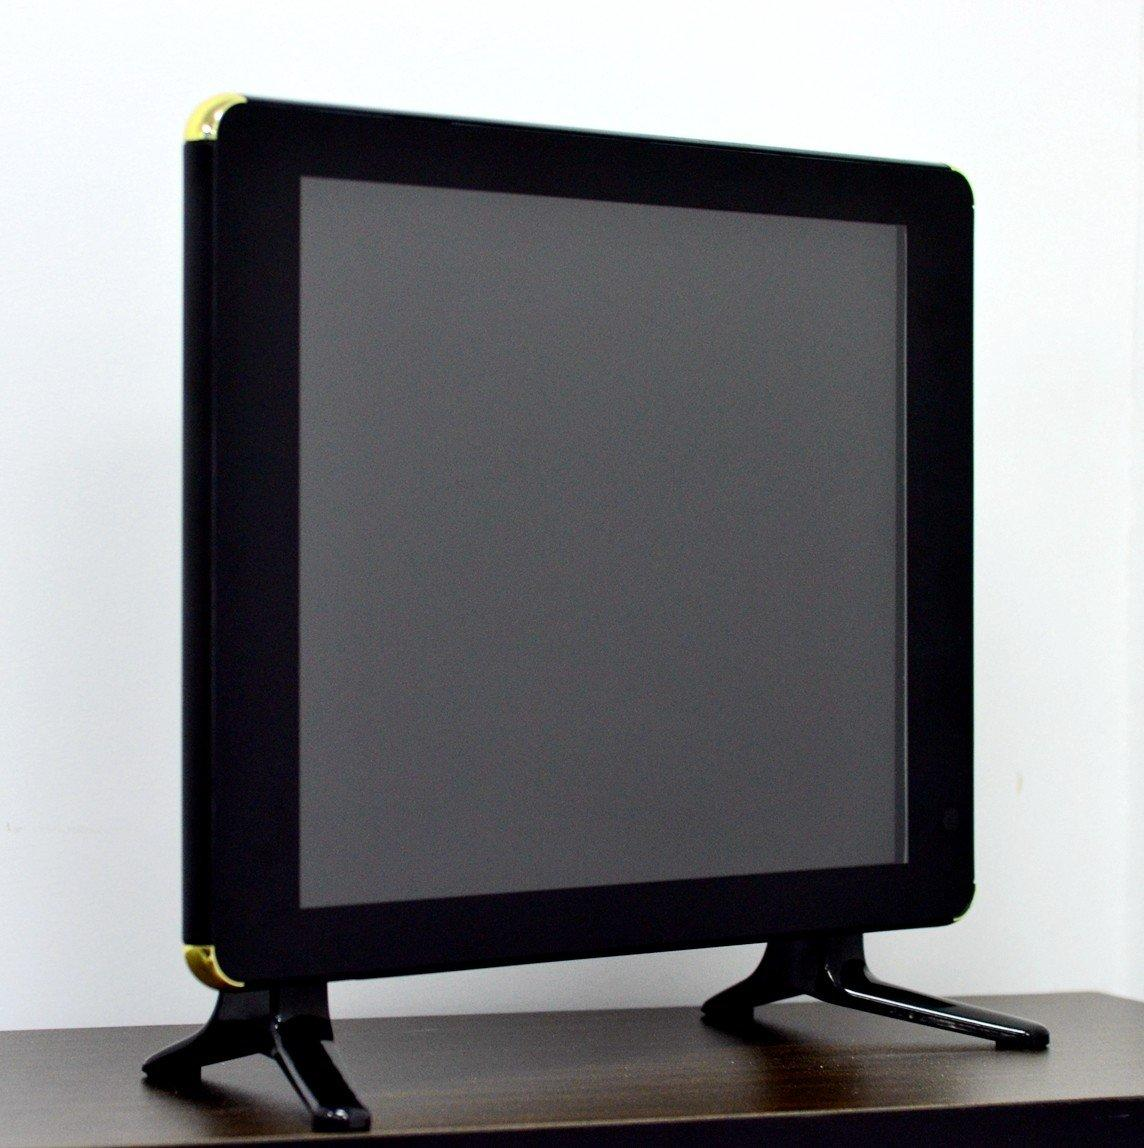 Xinyao LCD 17 inch tv for sale new style for lcd screen